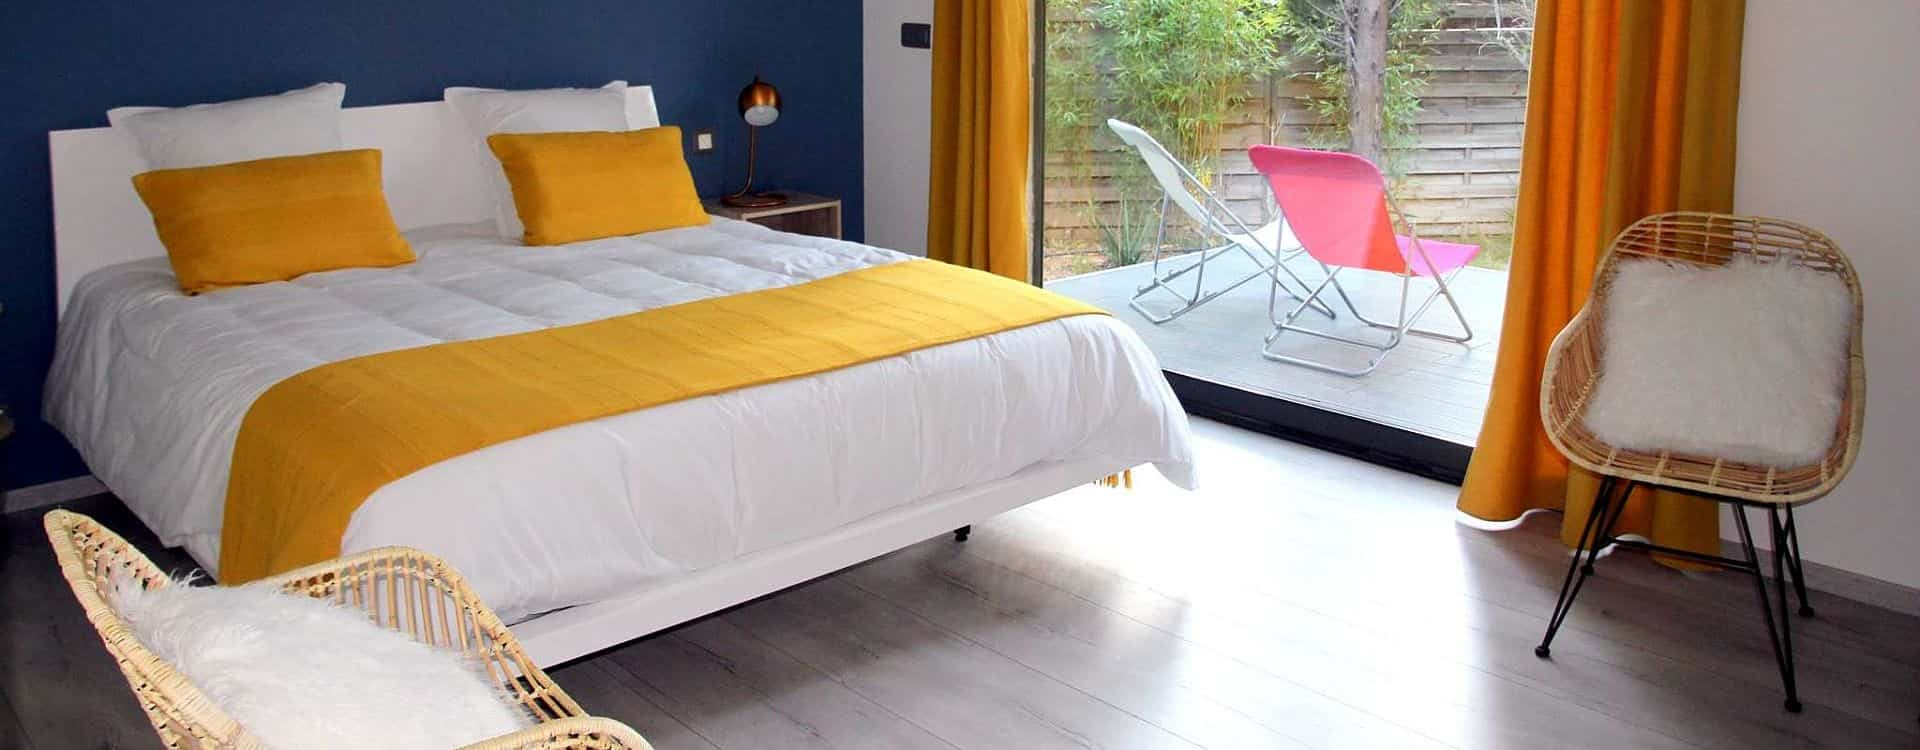 chambre-tout-confort-climatisation-terrasse-privative-maison-chambres-hotes-montpellier-herault